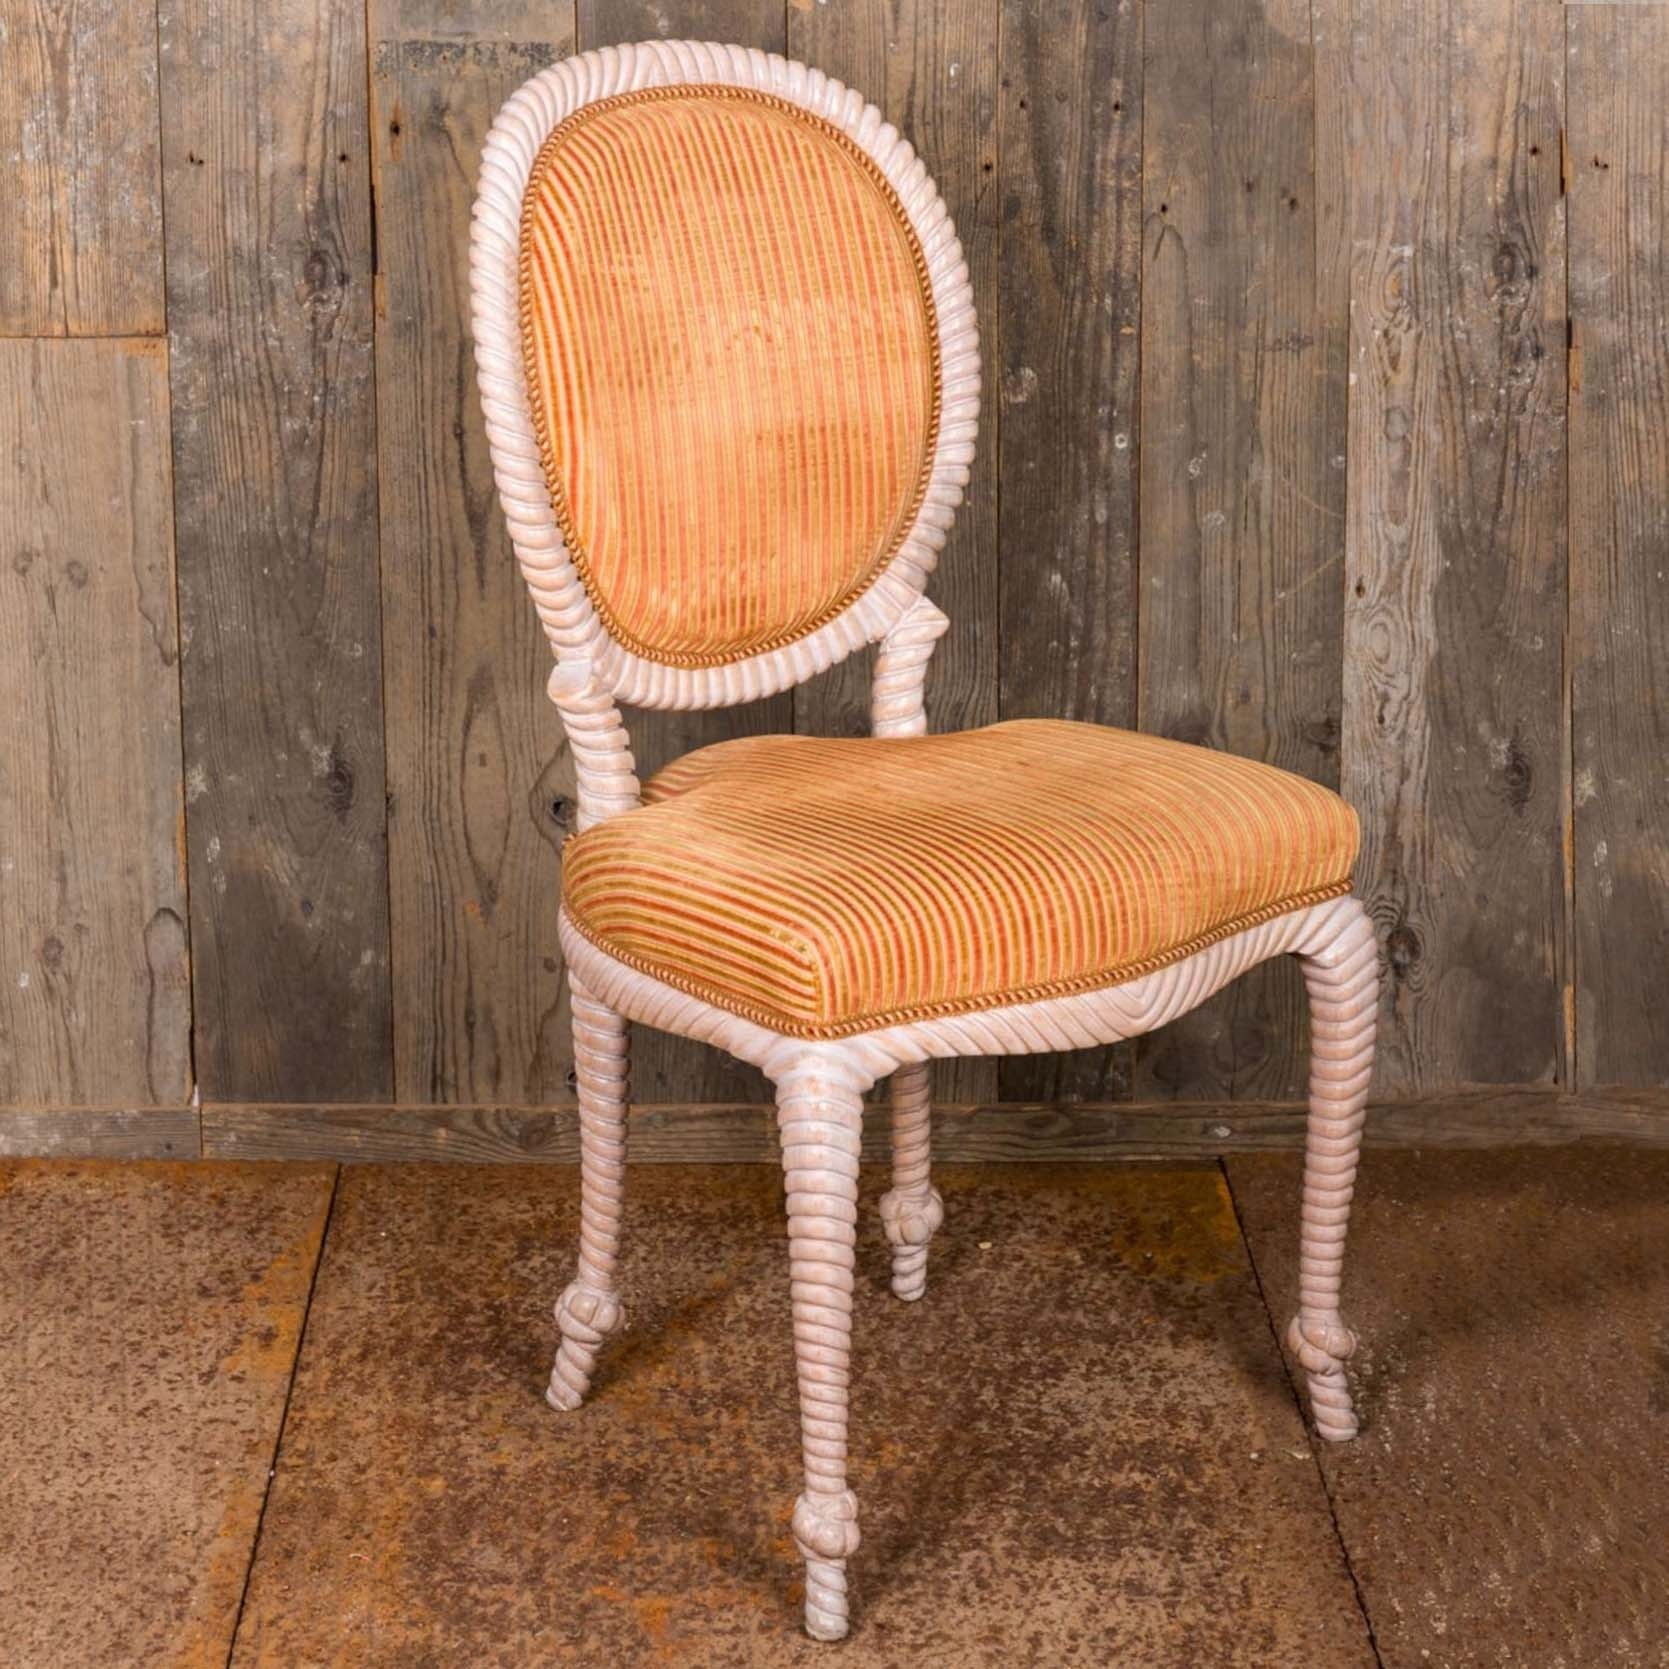 6 old dining room chairs,